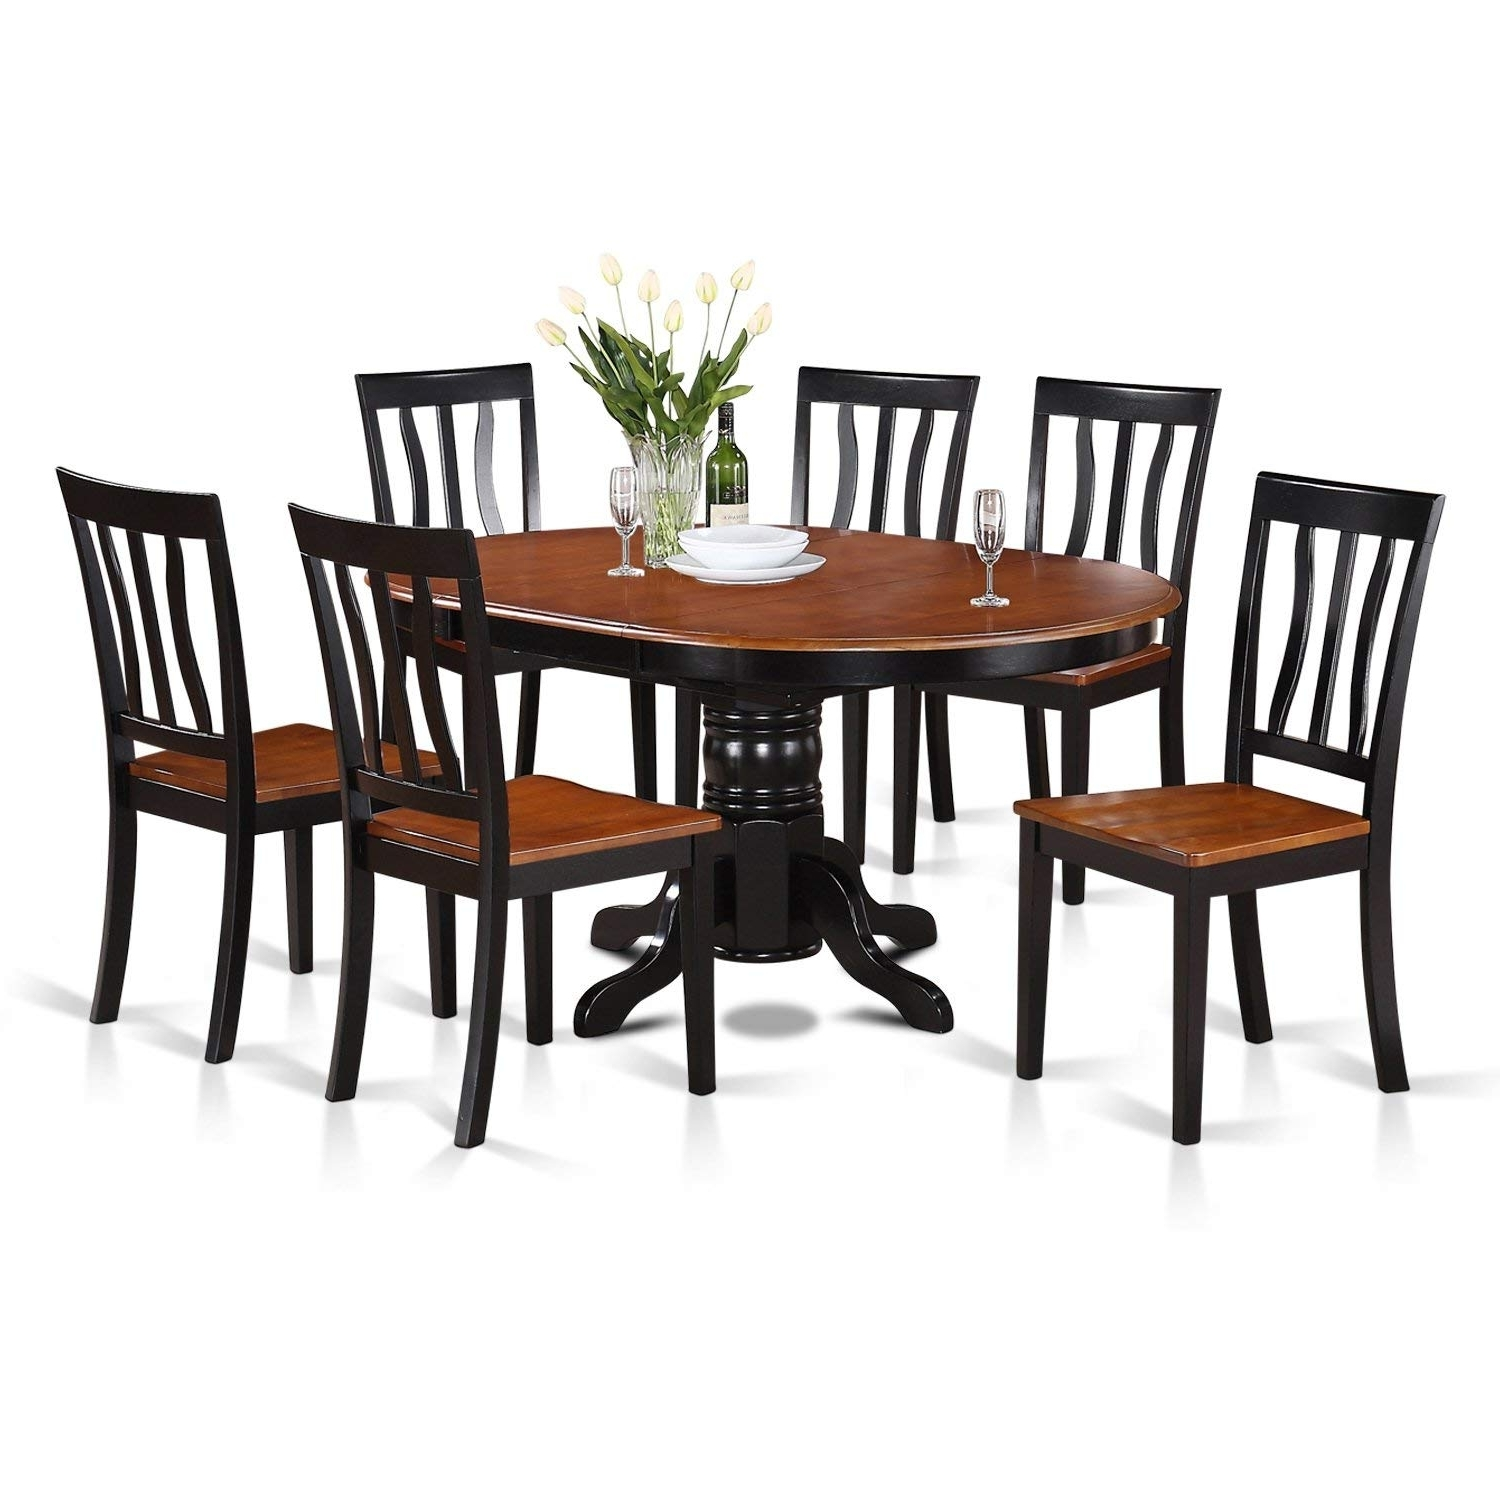 Trendy Jaxon 6 Piece Rectangle Dining Sets With Bench & Wood Chairs With Amazon: East West Furniture Avat7 Blk W 7 Piece Dining Table Set (View 22 of 25)